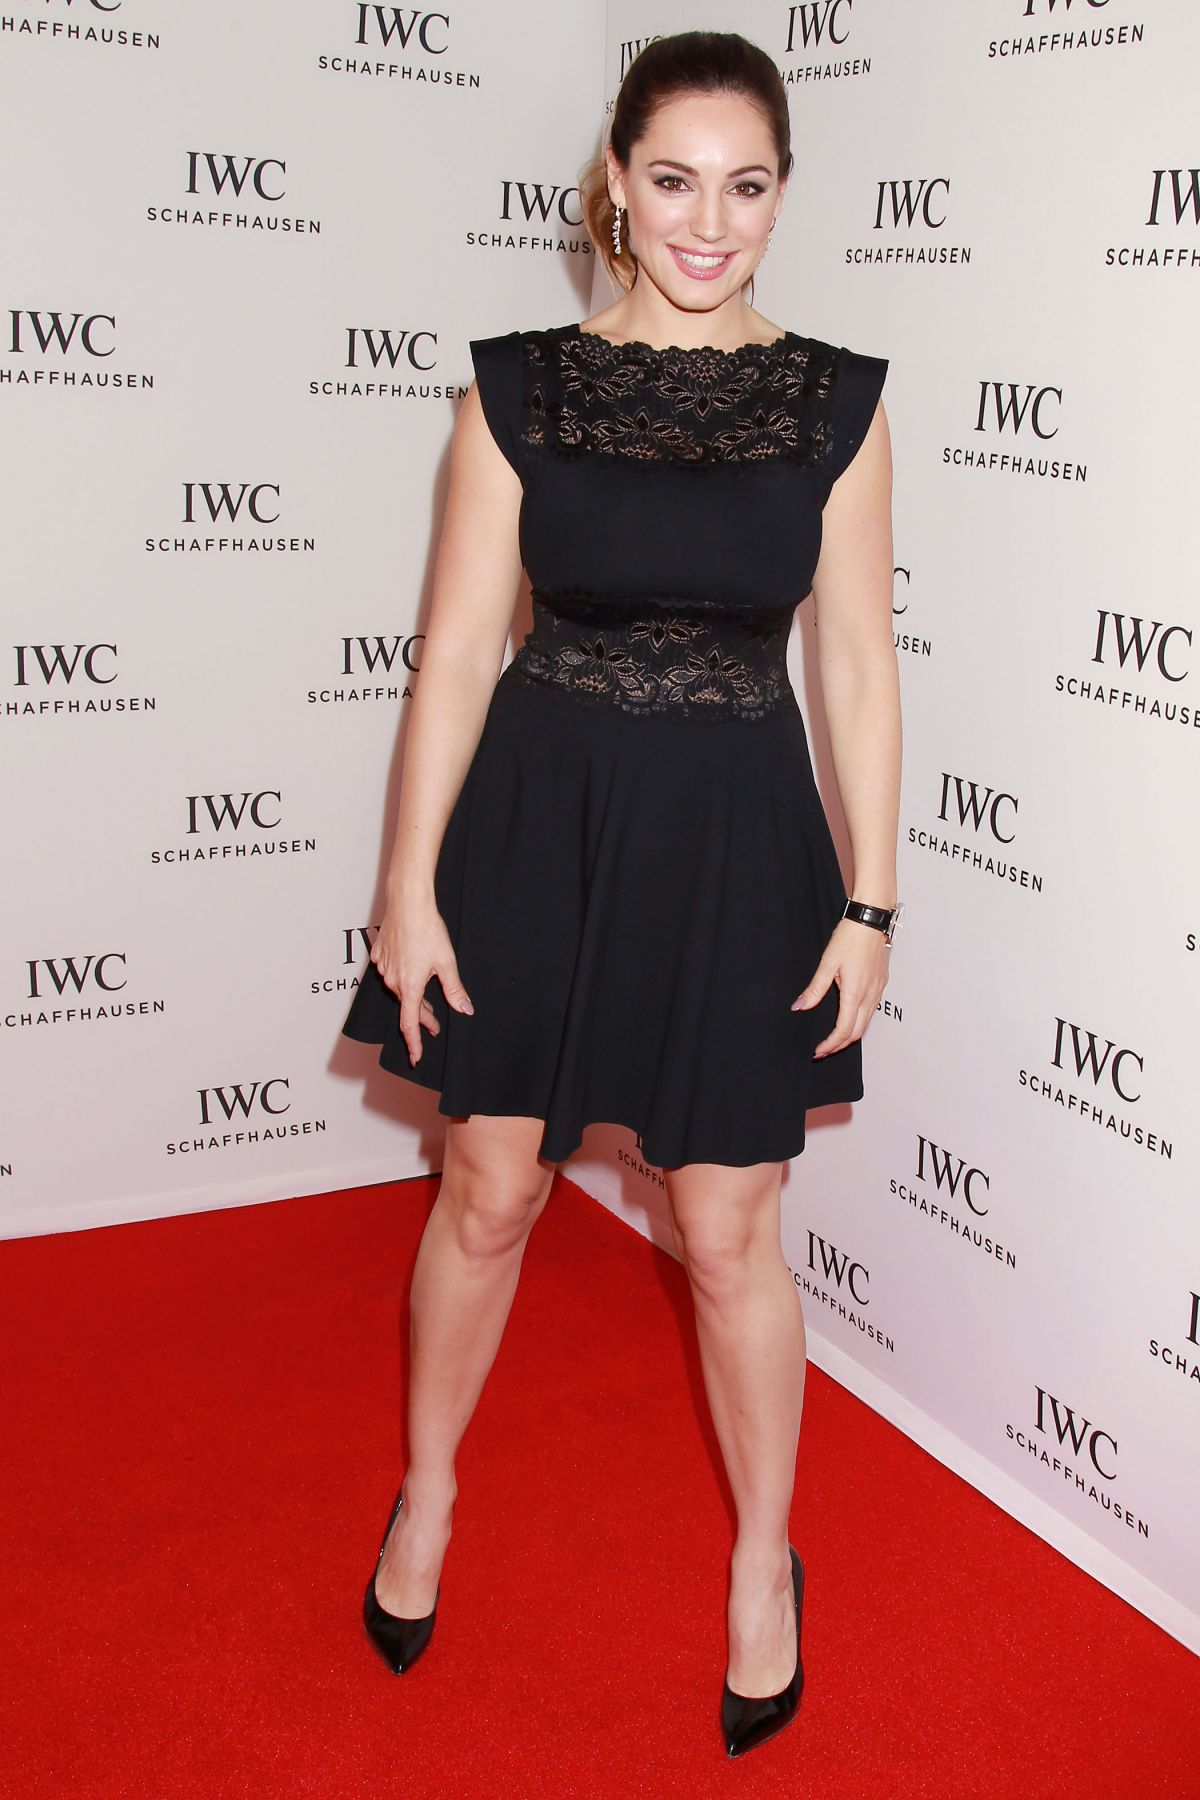 KELLY BROOK at IWC Schaffhausen for the Love of Cinema Gala at Tribeca Film Festival